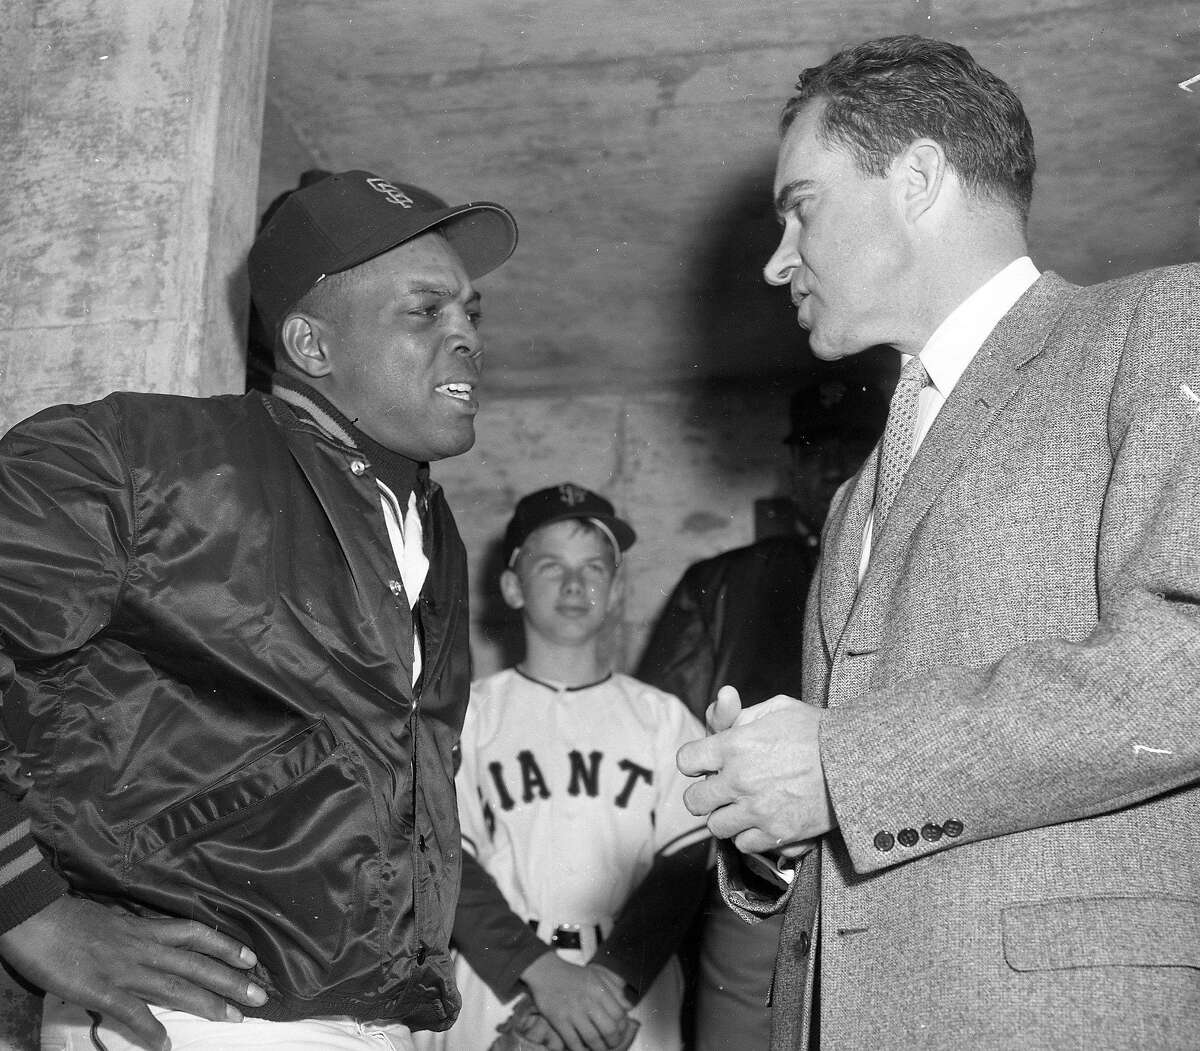 Willie Mays talks baseball with Vice President Richard M. Nixon before opening day at Candlestick Park April 12, 1960